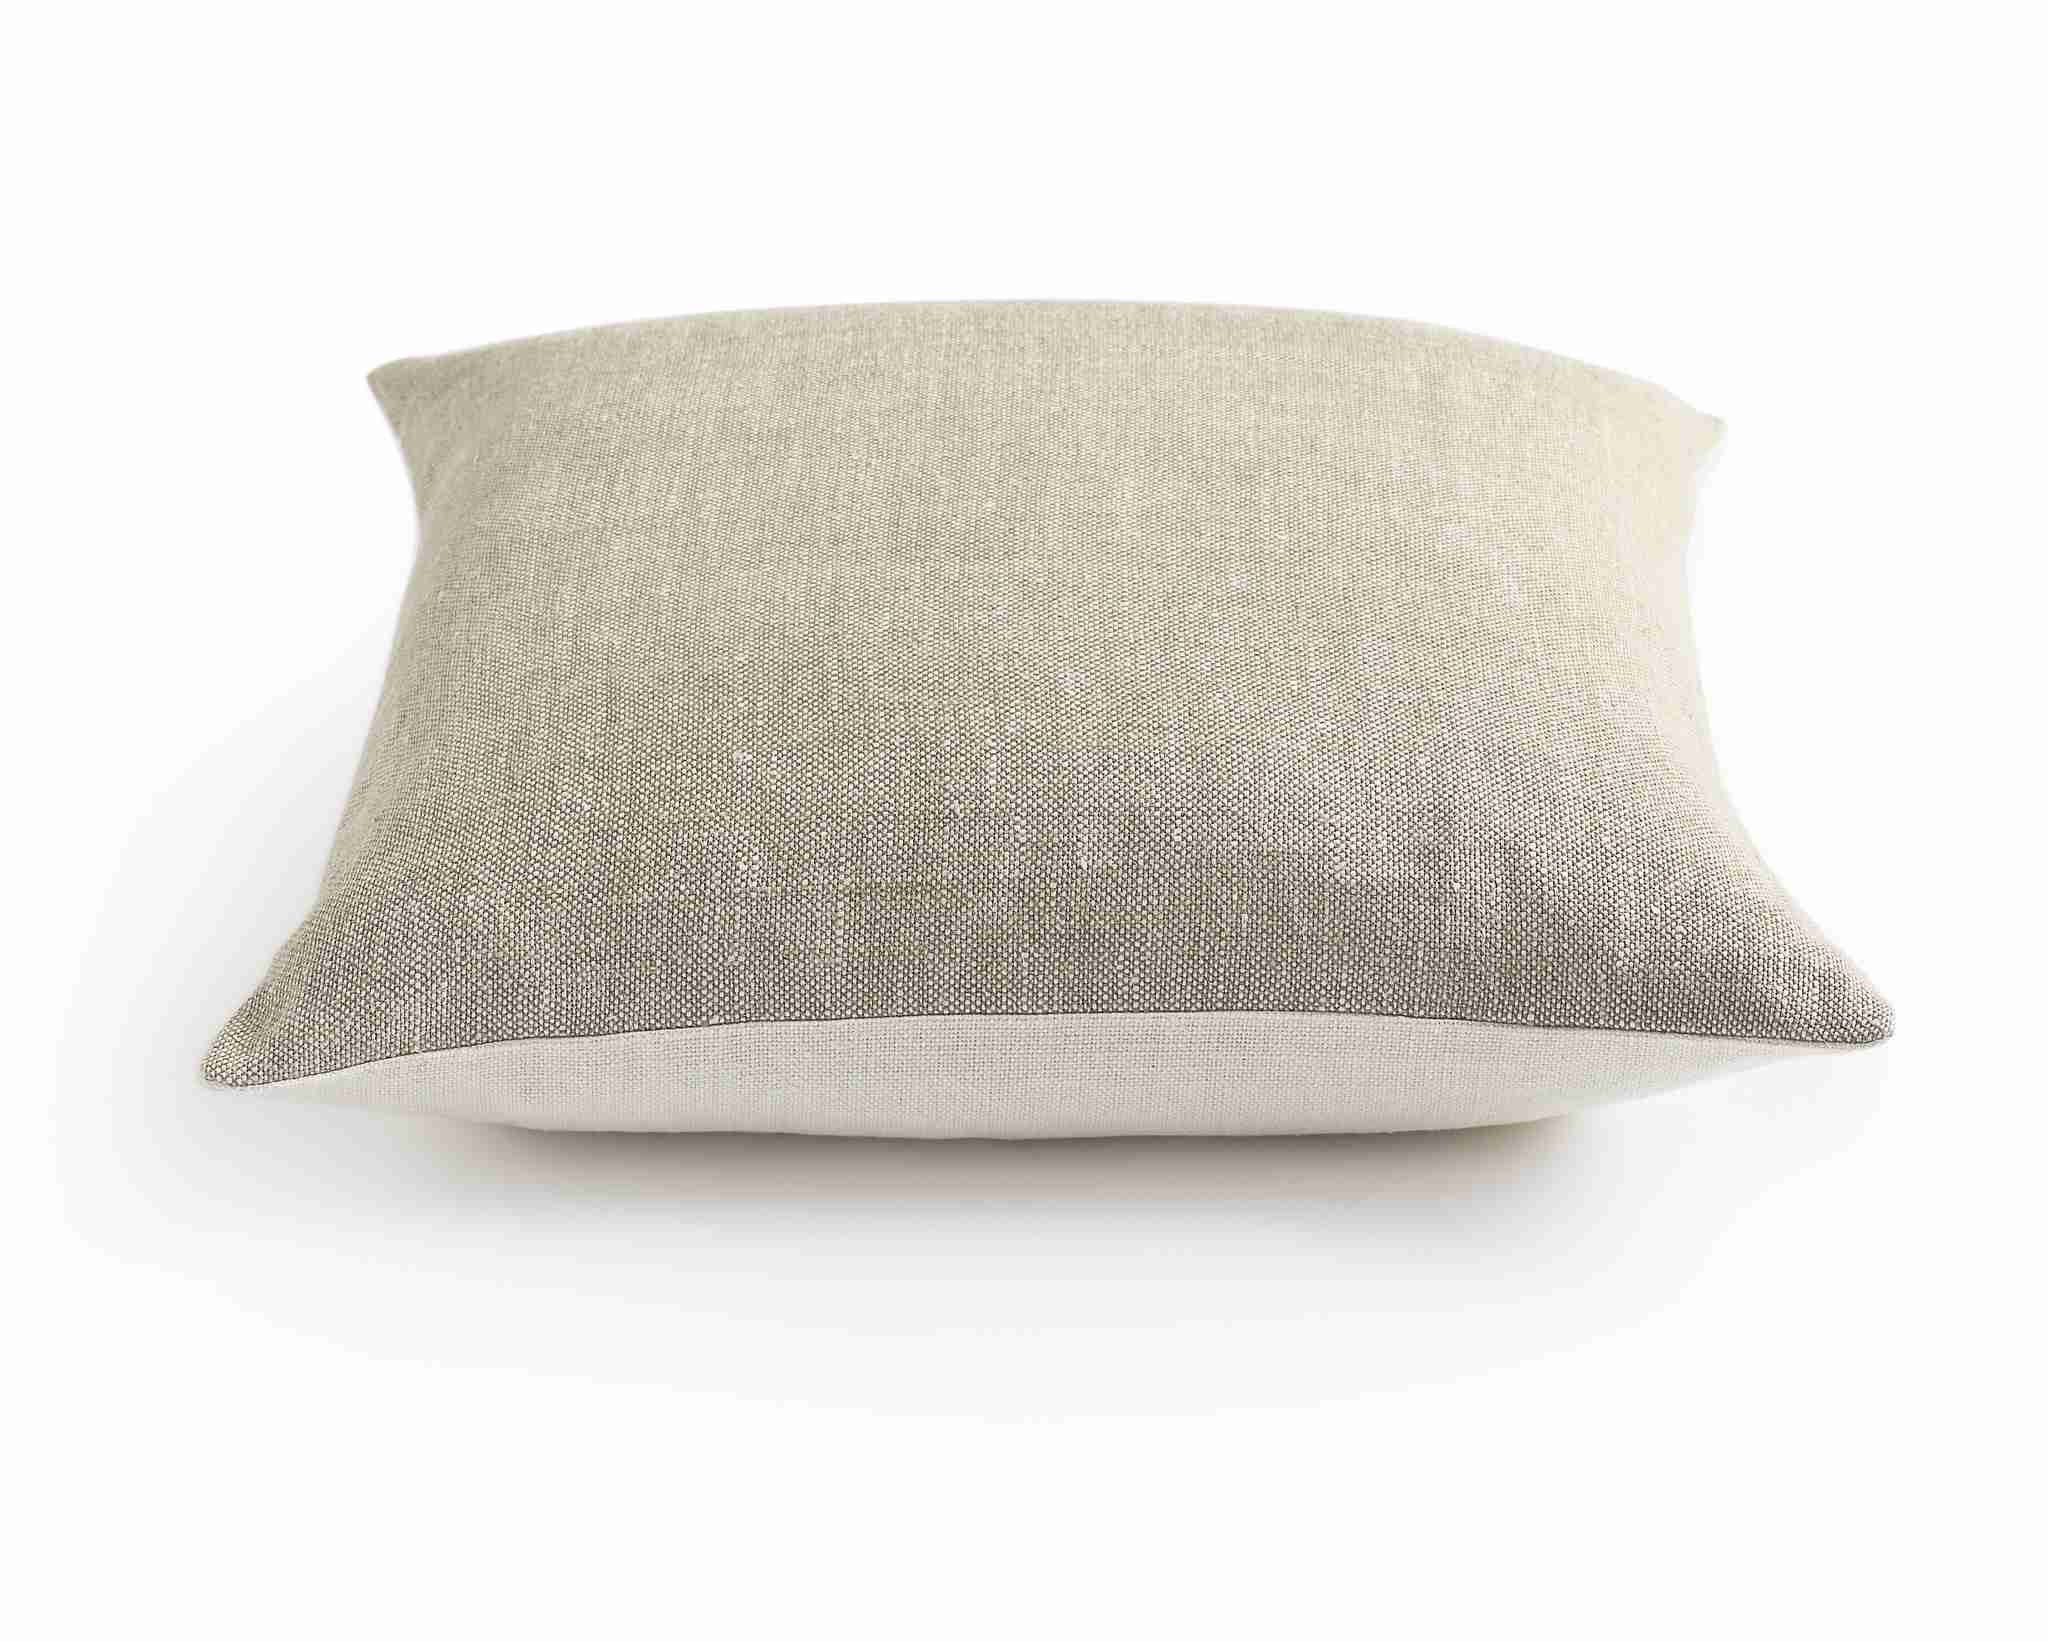 Belgian Linen Pillow Cover - Oyster and Oatmeal